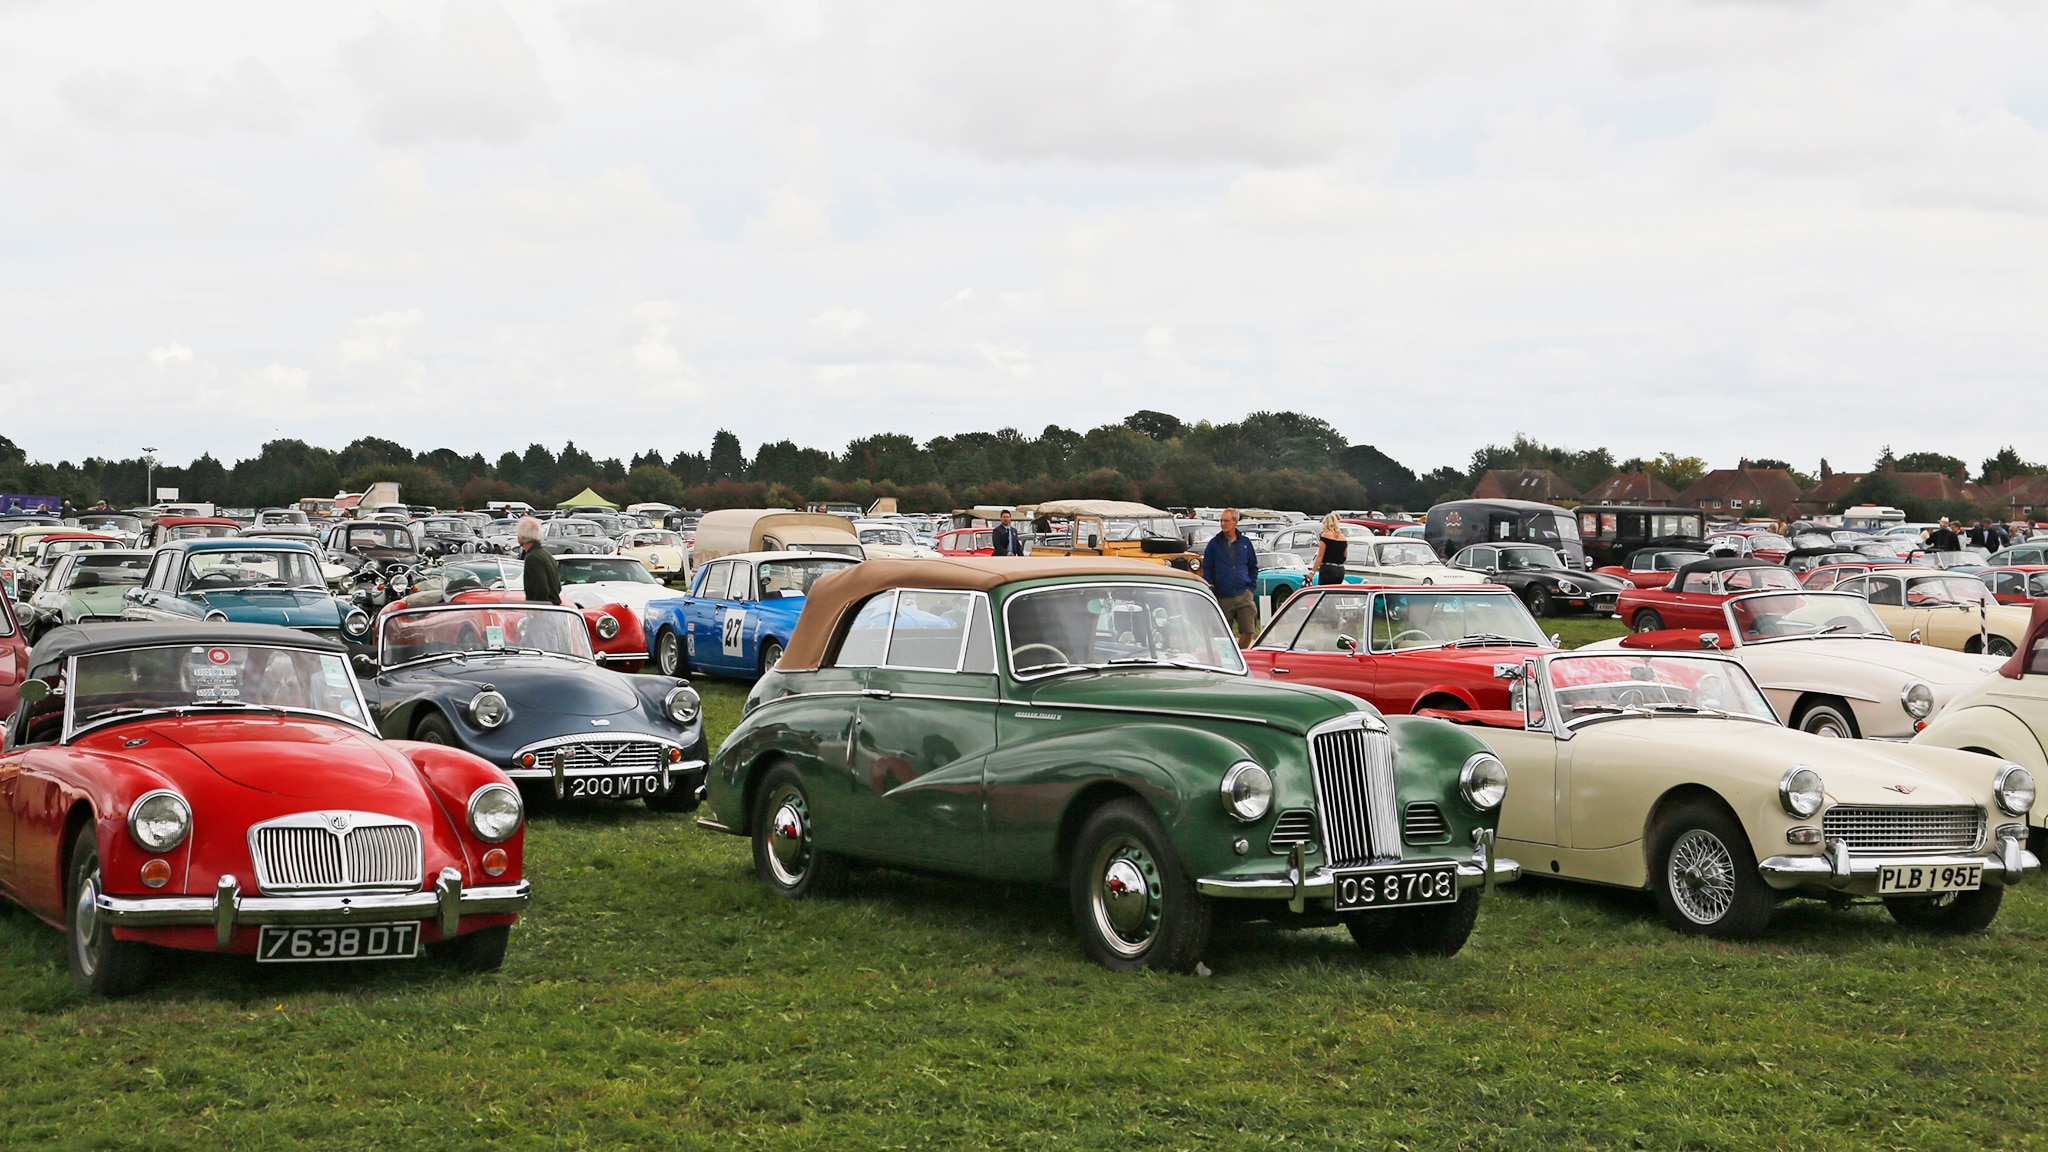 Seven Favorites Spotted In The Parking Lot Of The Goodwood - Falcon field car show 2018